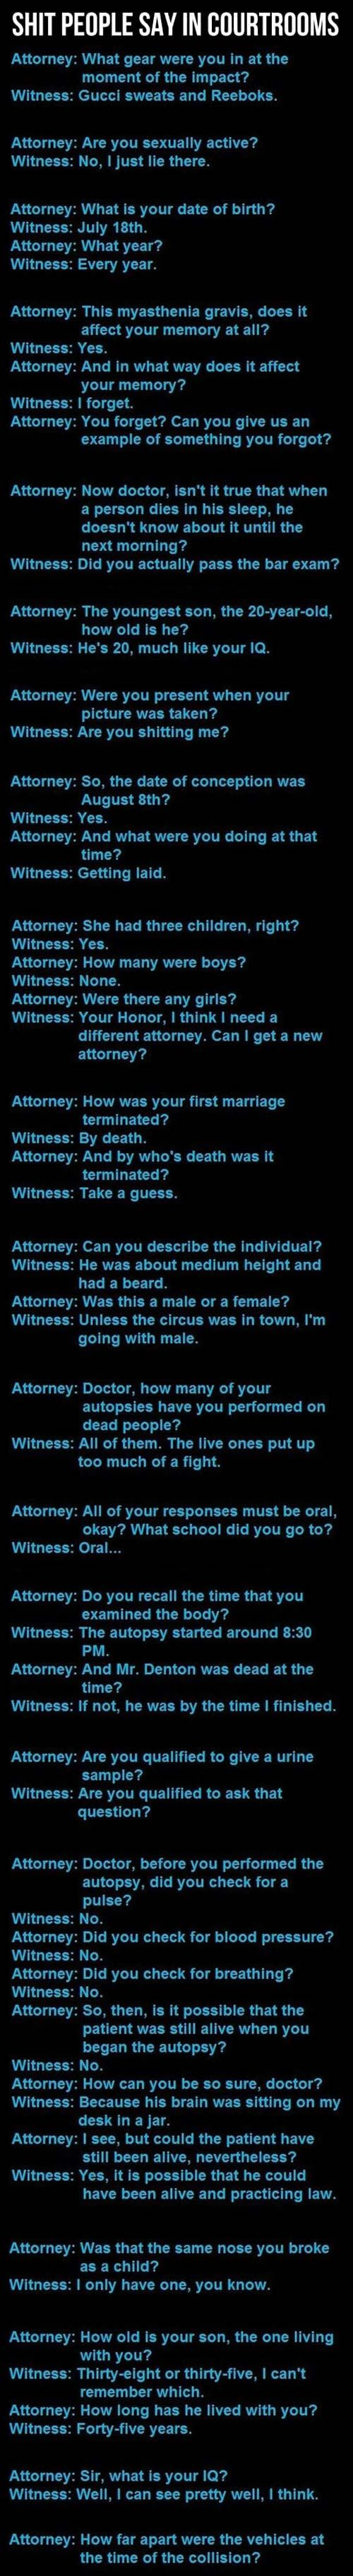 Dumb things people say in courtrooms. Oh gosh hahahahaha  I can only imagine. . .